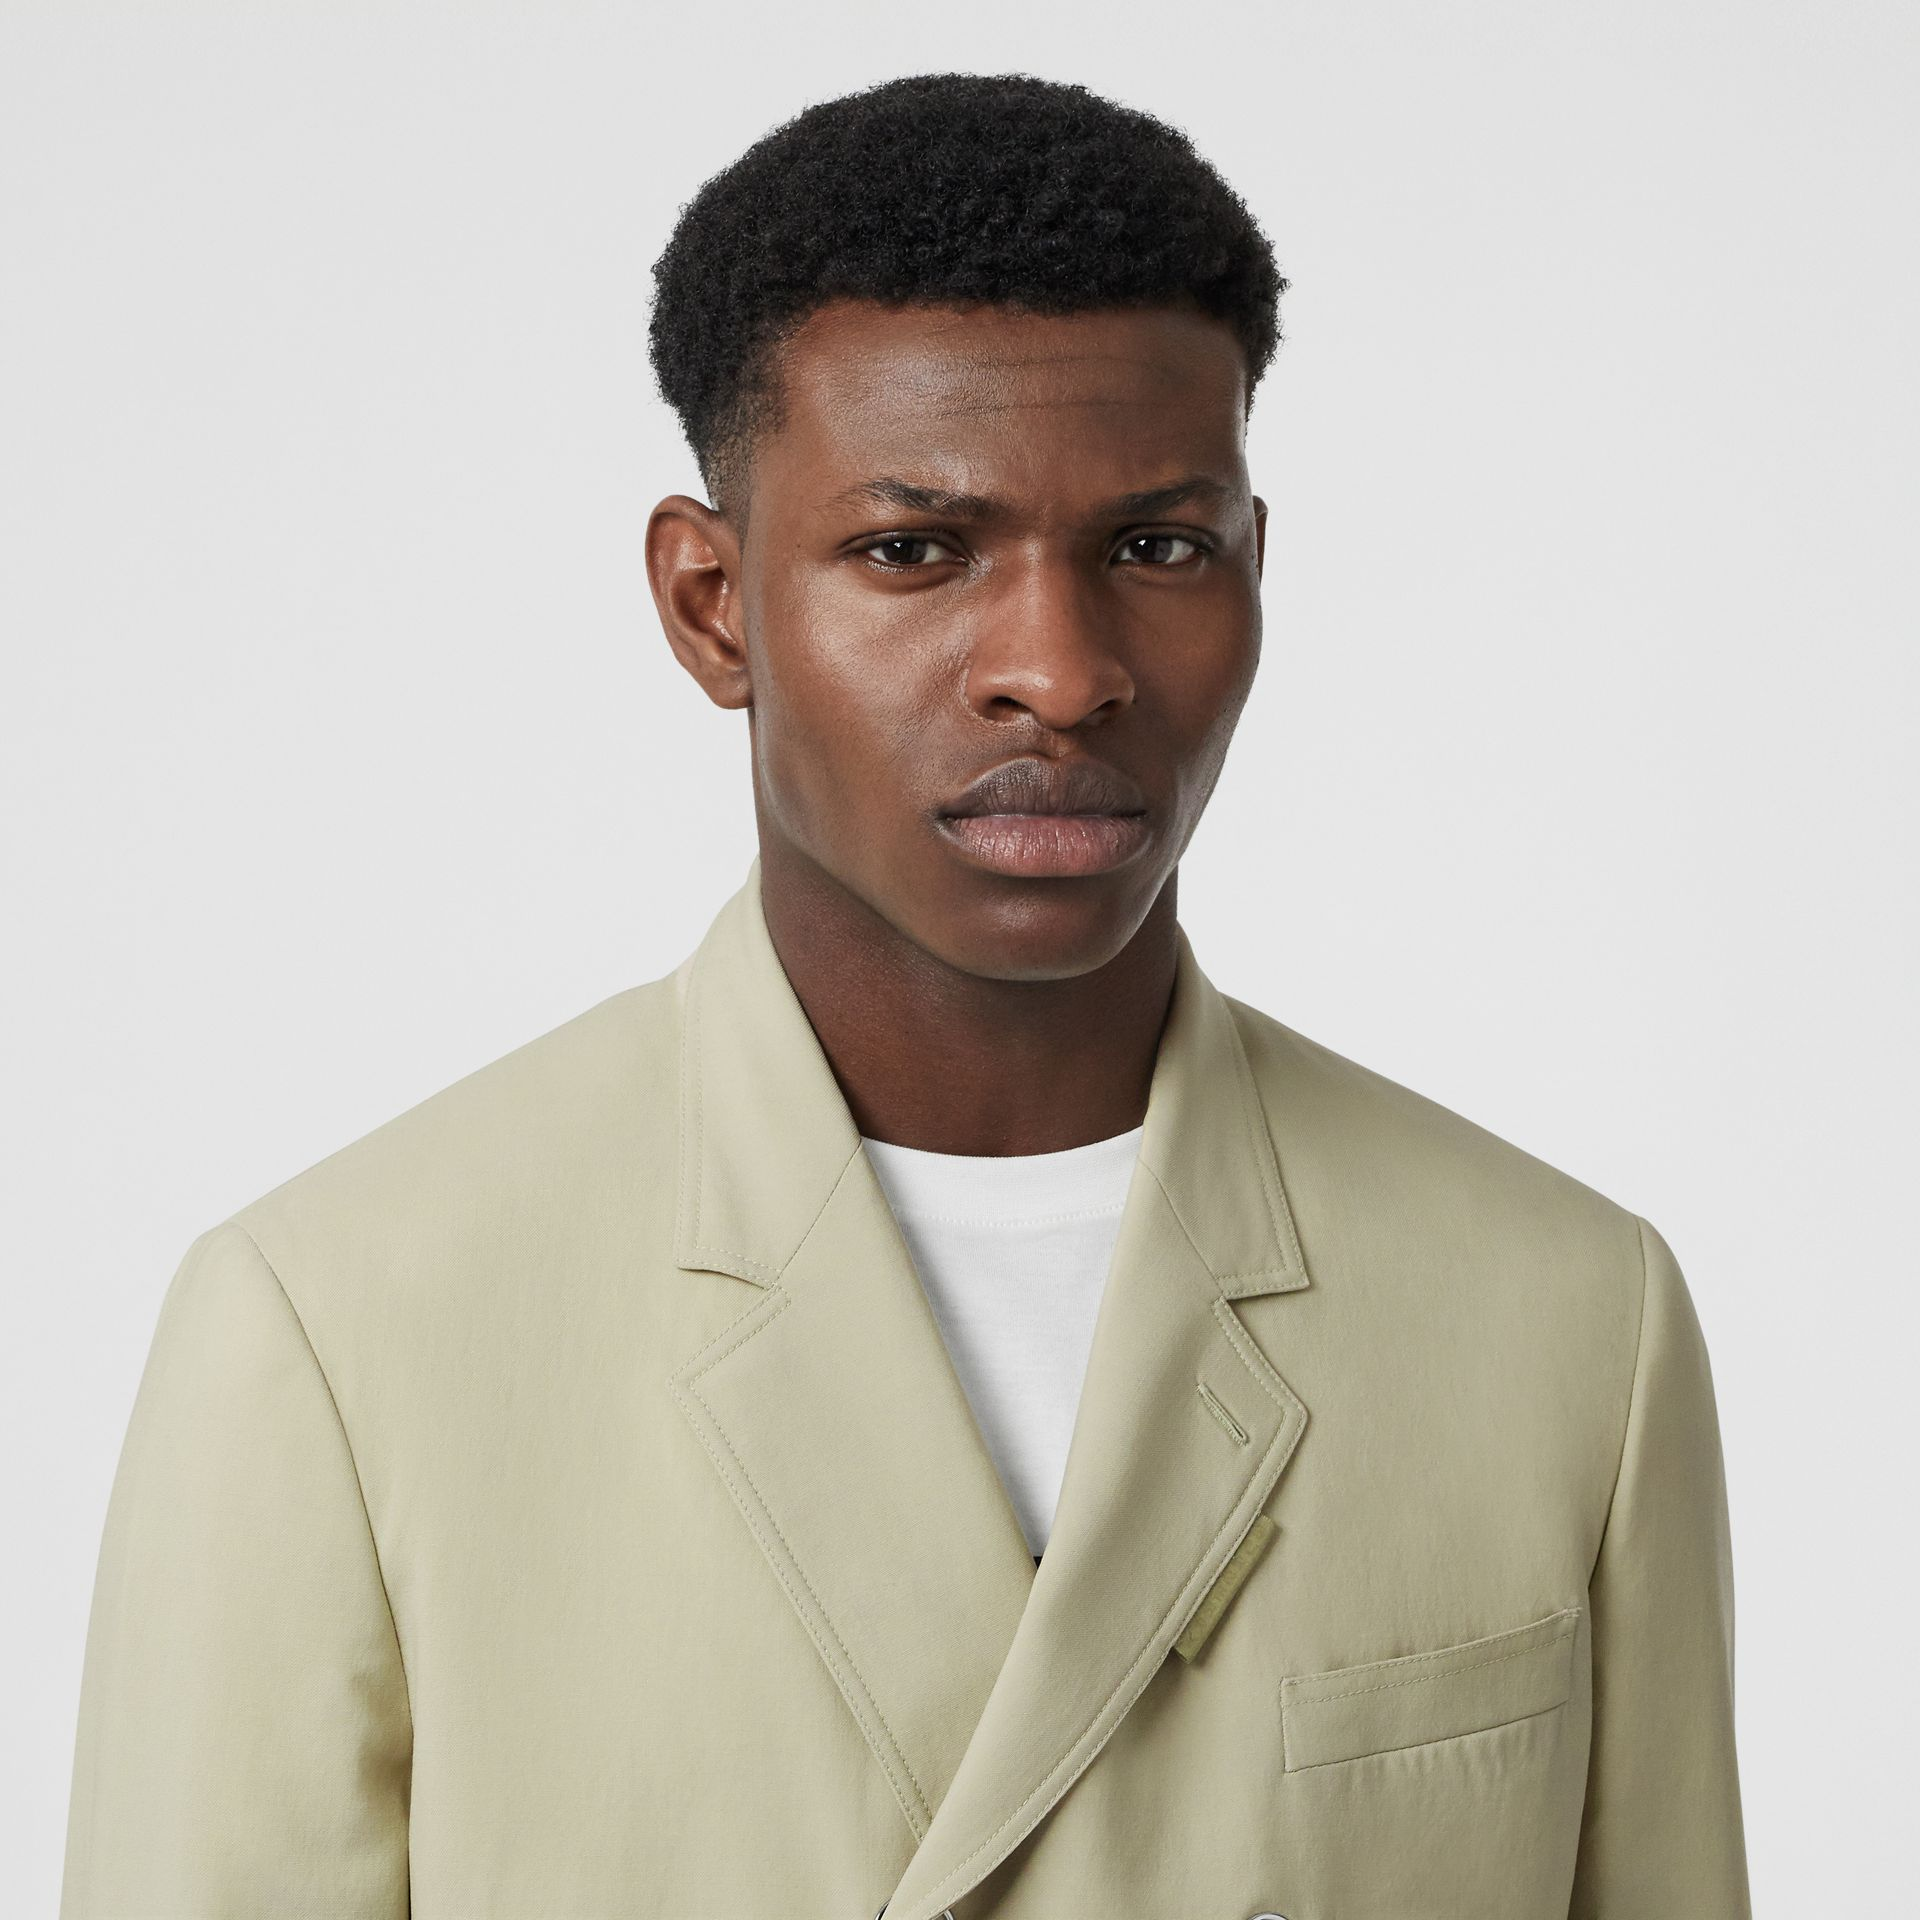 Slim Fit Press-stud Wool Tailored Jacket in Matcha | Burberry Canada - gallery image 9